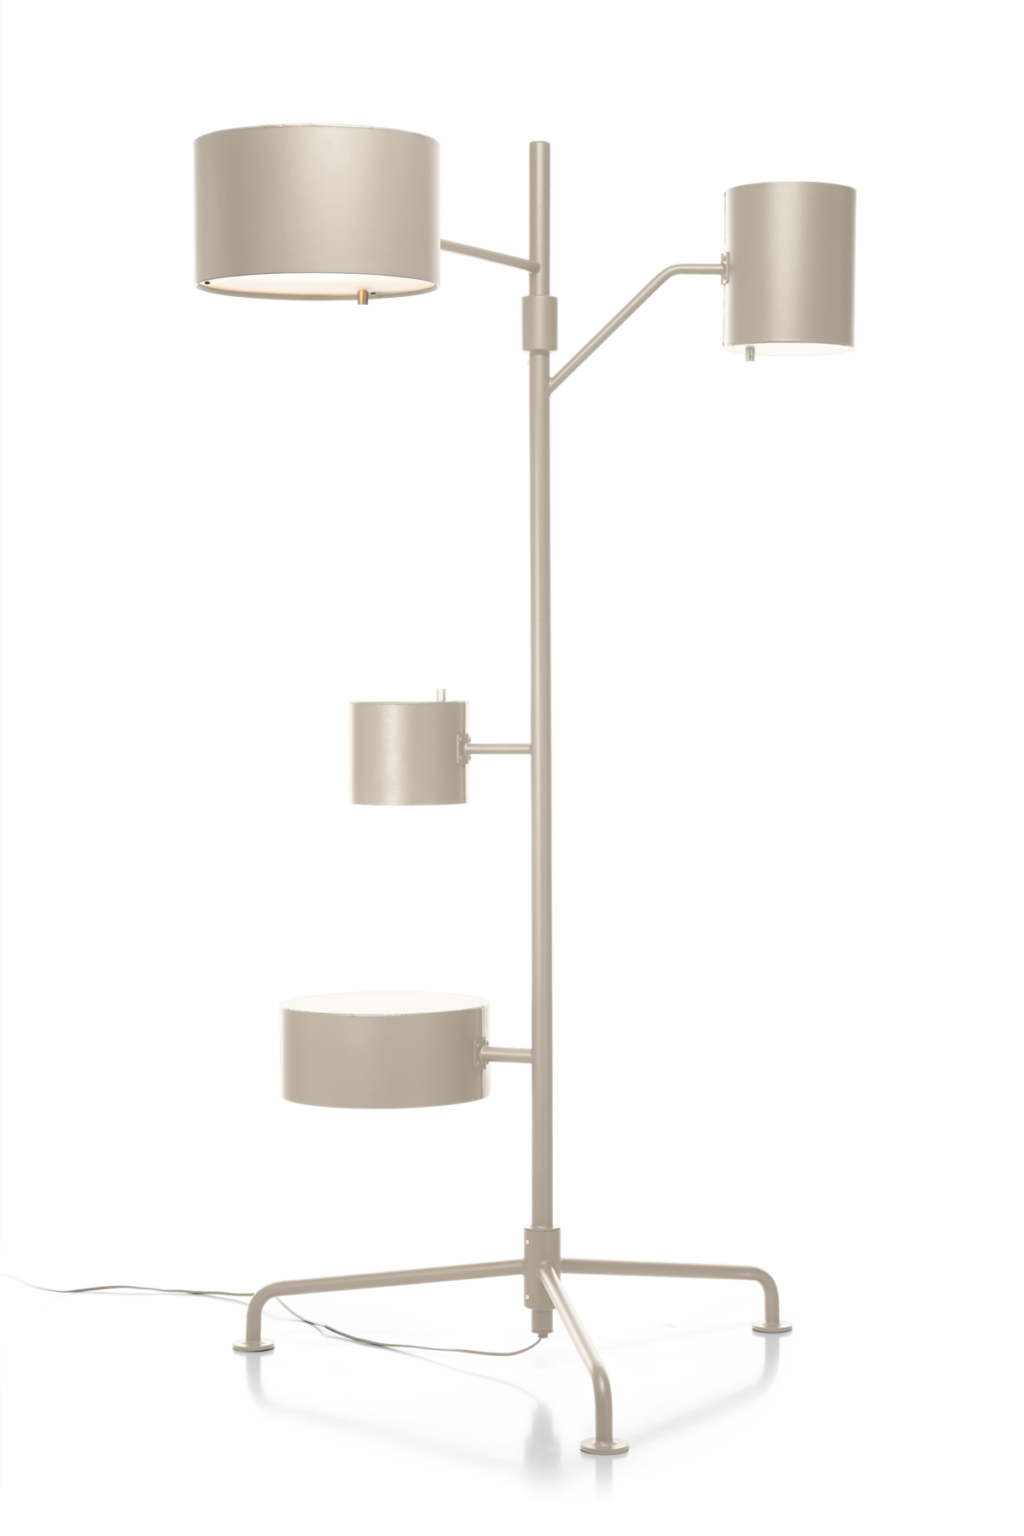 https://desidea.hu/wp-content/uploads/fly-images/160197/moooi-statistocrat_allolampa5-1024x0.png